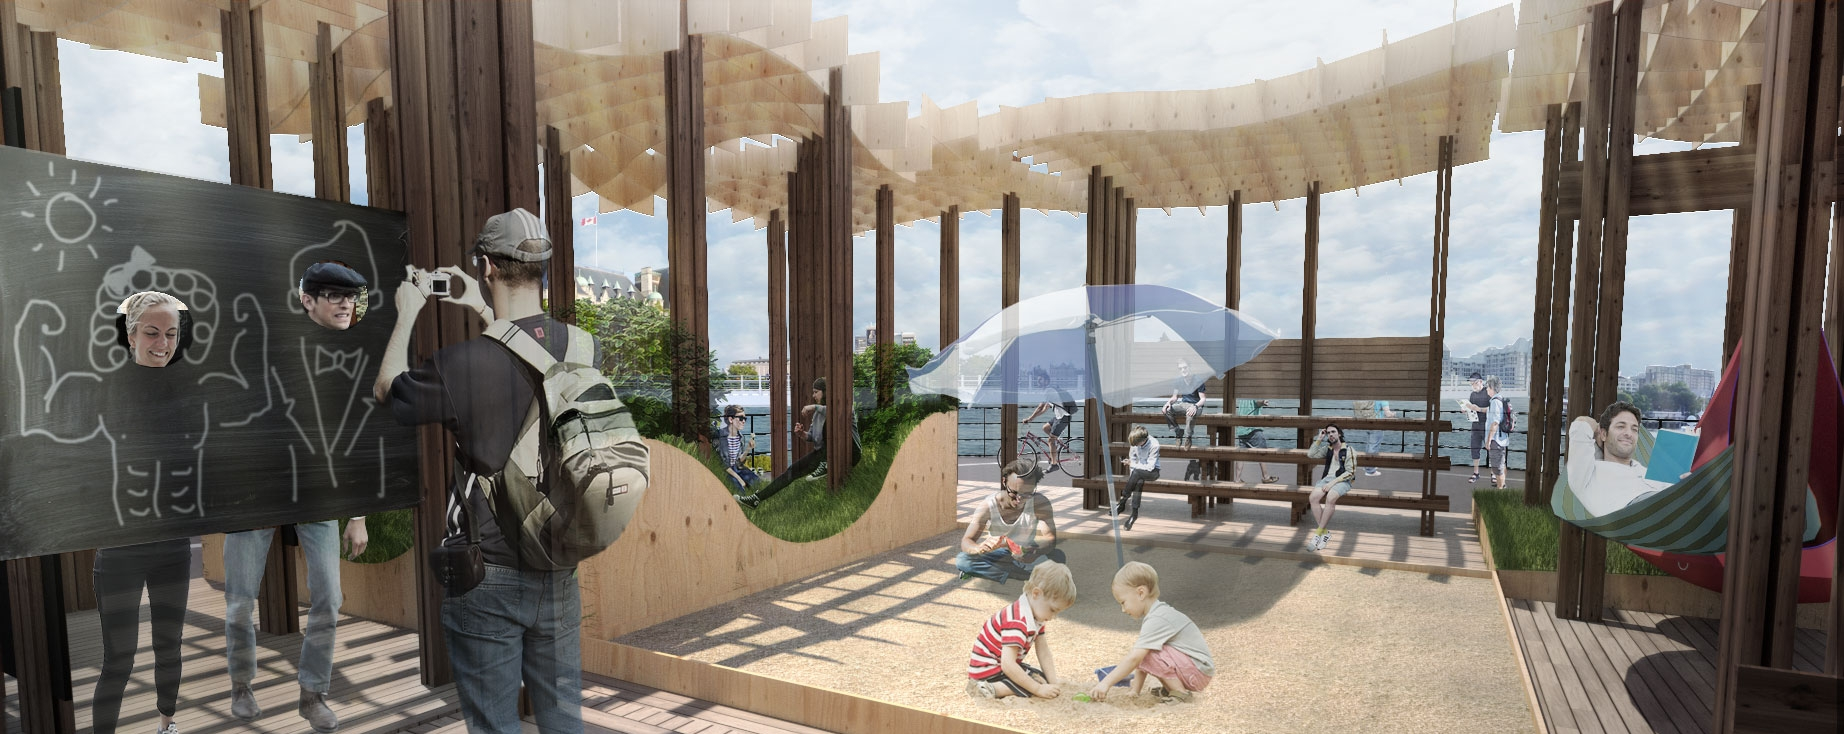 Concept renders for the Ship Point Pop-Up design competition.